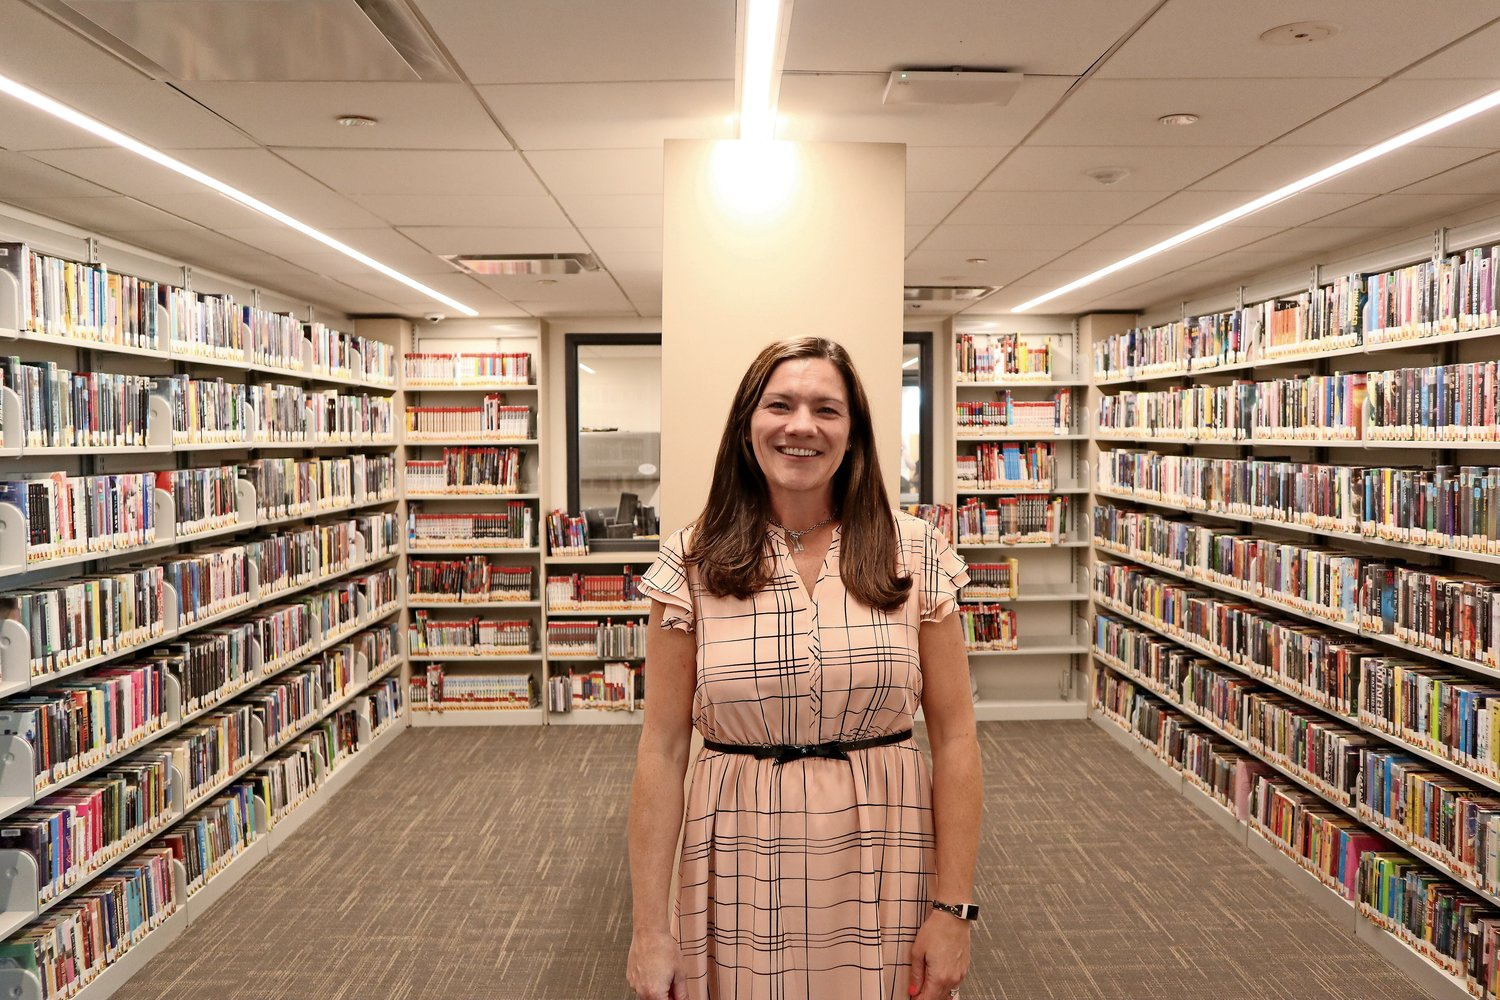 Jessica Tymecki, head of the young adult department, in her corner of paradise. When Bazzicalupo retires, she will become the acting librarian in charge during the search for a new director.